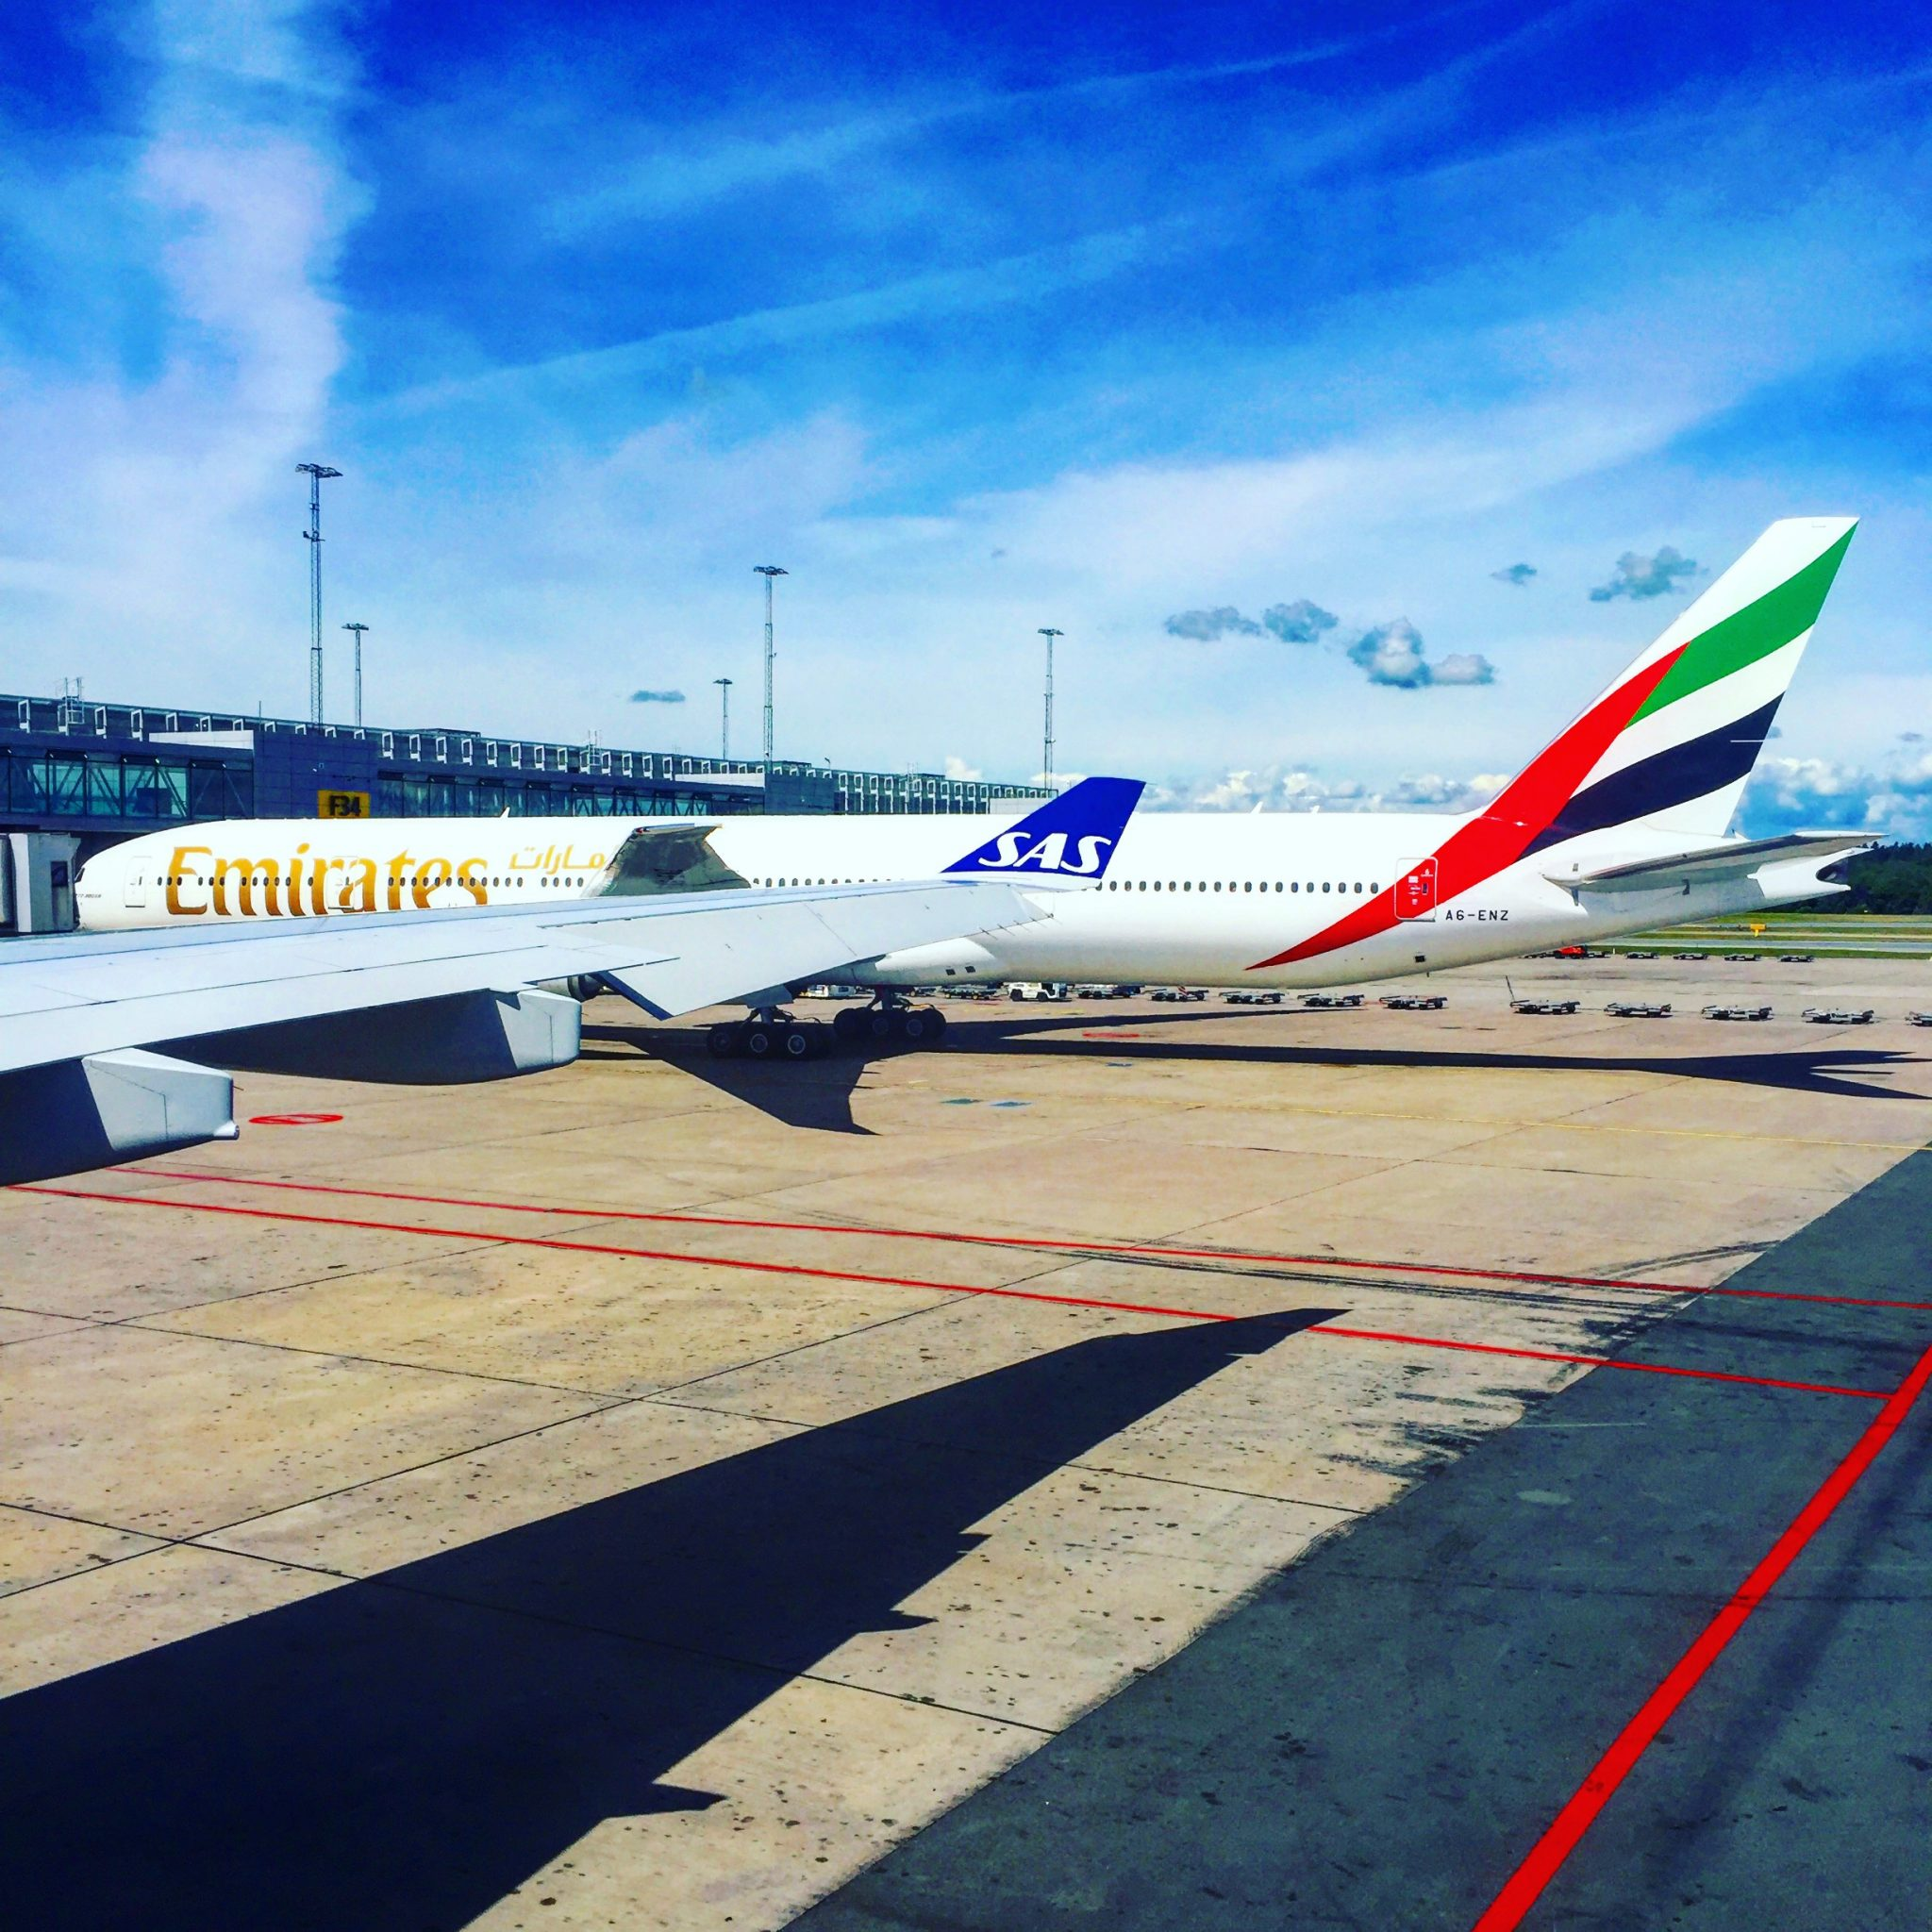 A picture of Emirates airlines at Stockholm Arlanda Airport